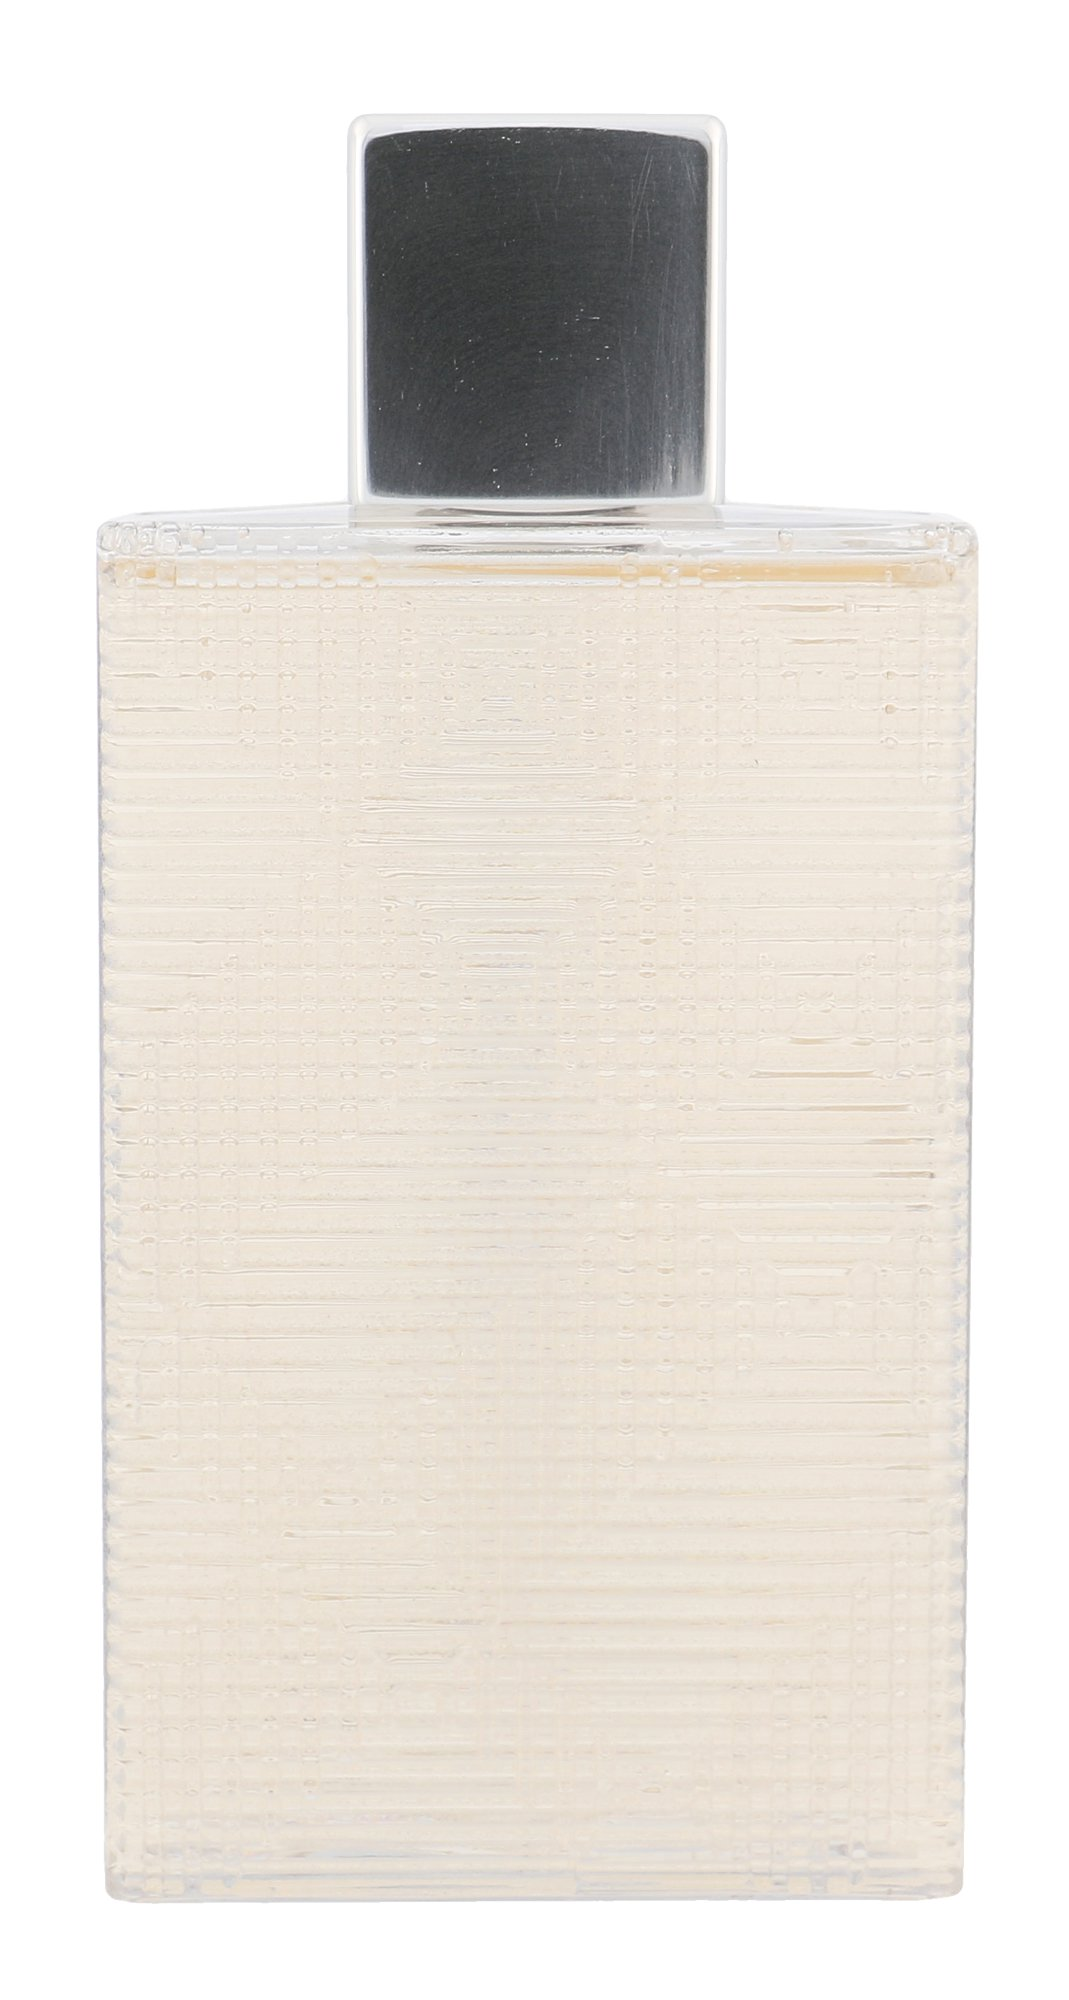 Burberry Brit, Sprchovací gél 150ml - For Her